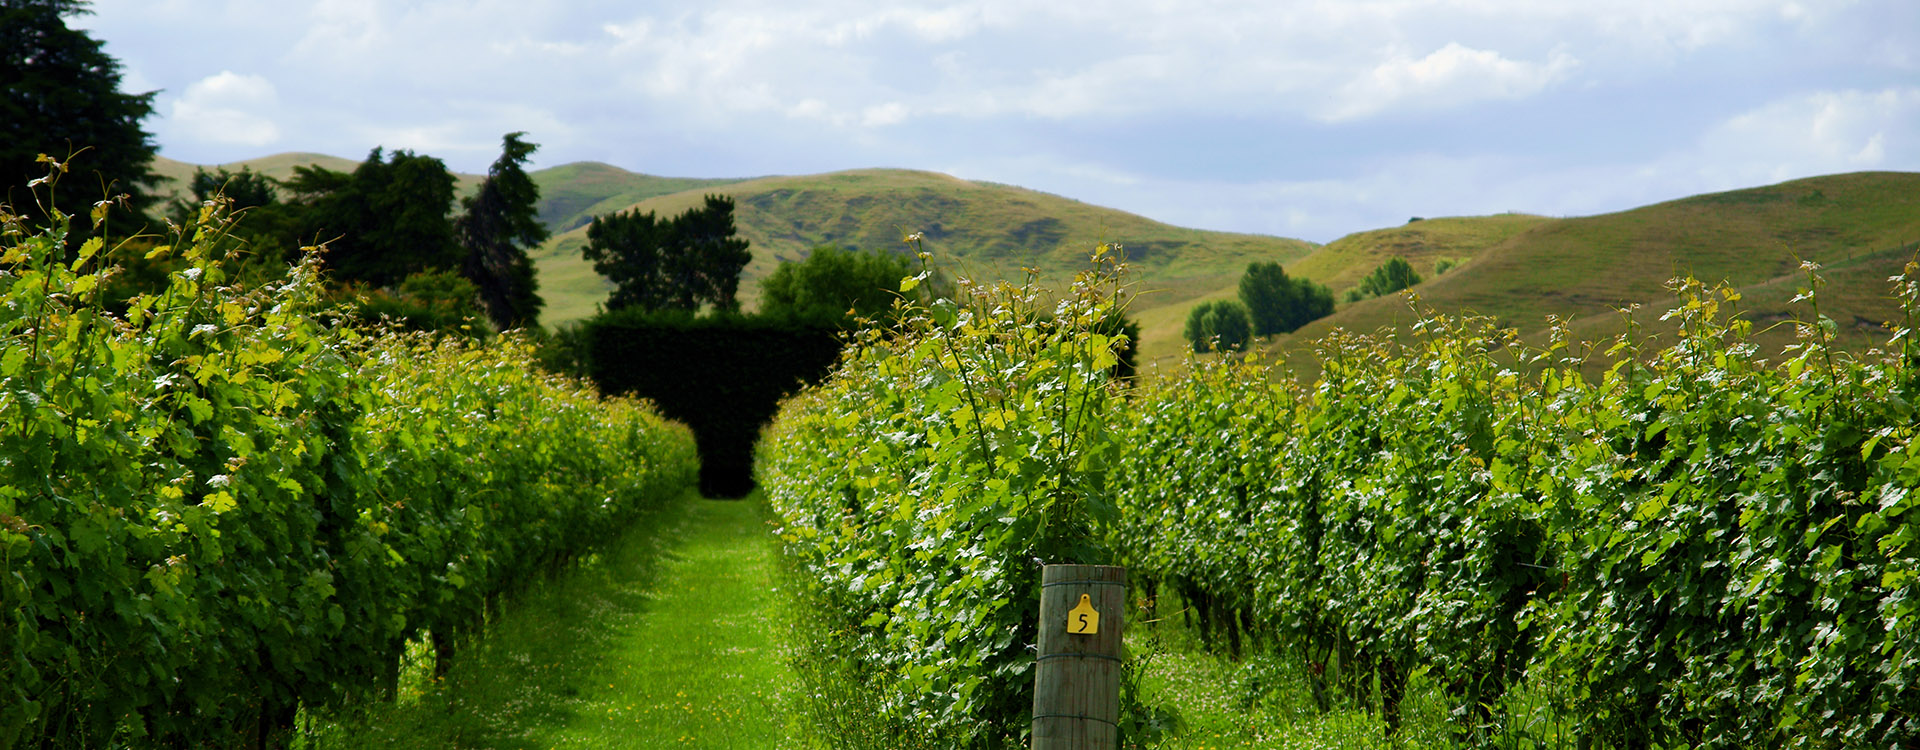 Vineyard rows on a clear sunny day in Napier Hawkes Bay New Zealand